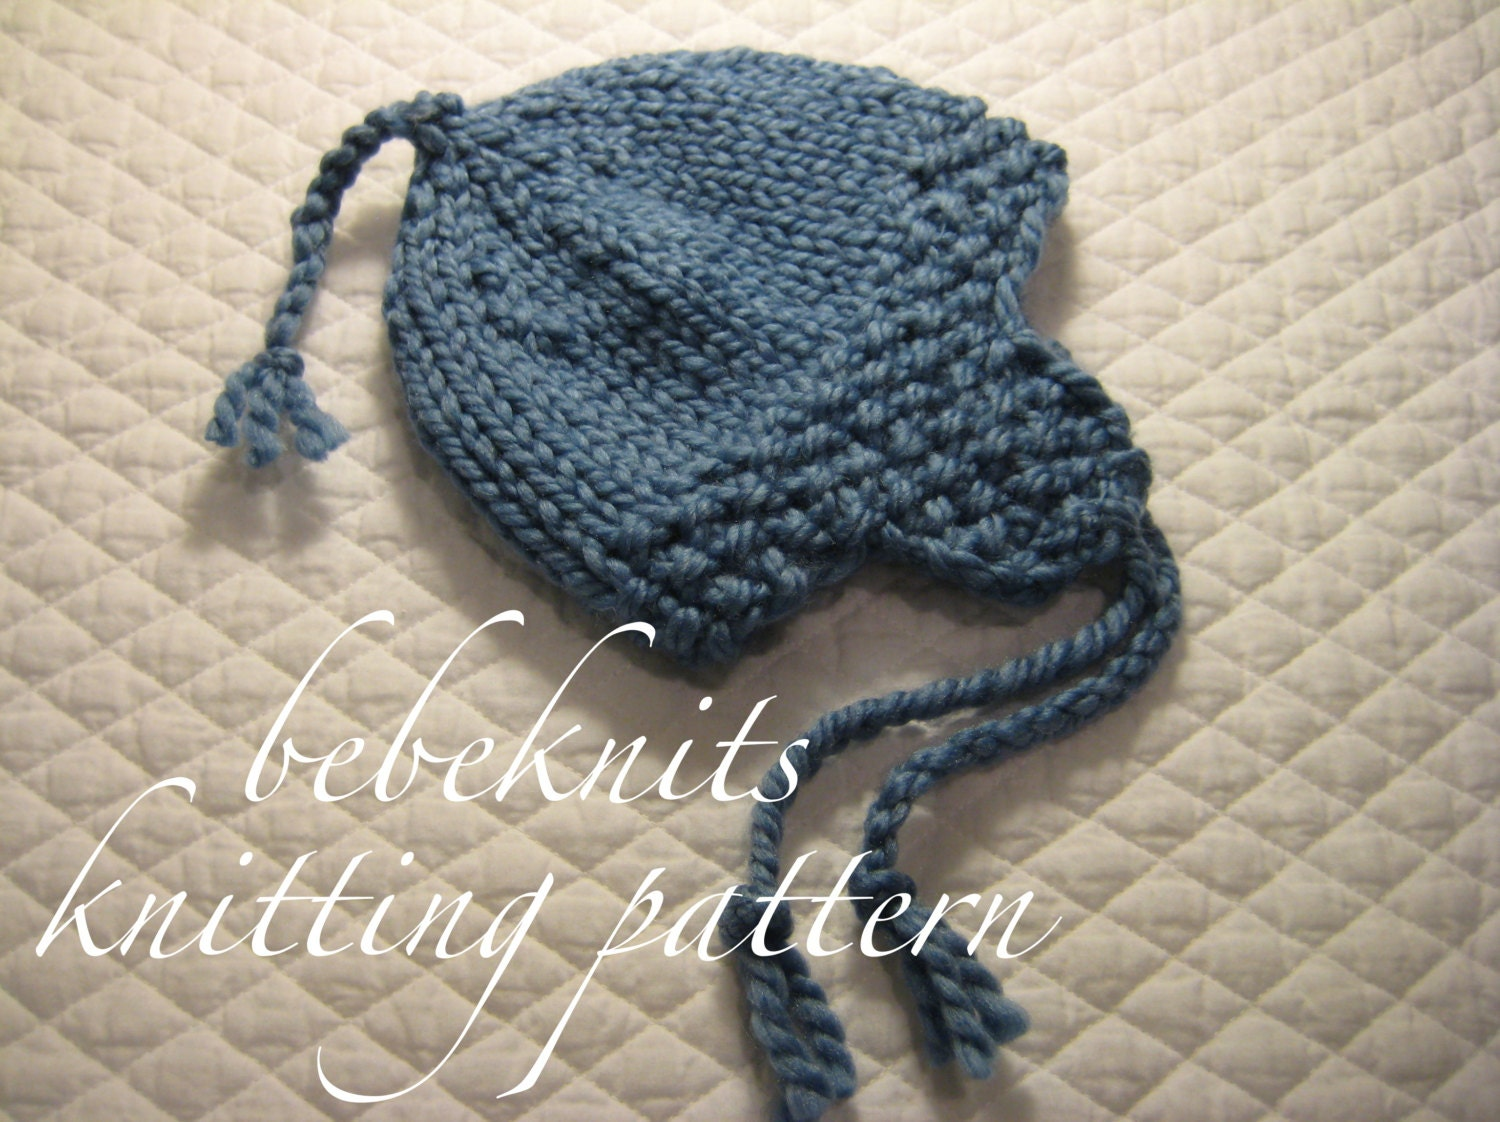 Knitting Pattern For Infant Hat With Ear Flaps : Bebeknits Quick Knit Ear Flap Baby Hat Knitting Pattern in 3